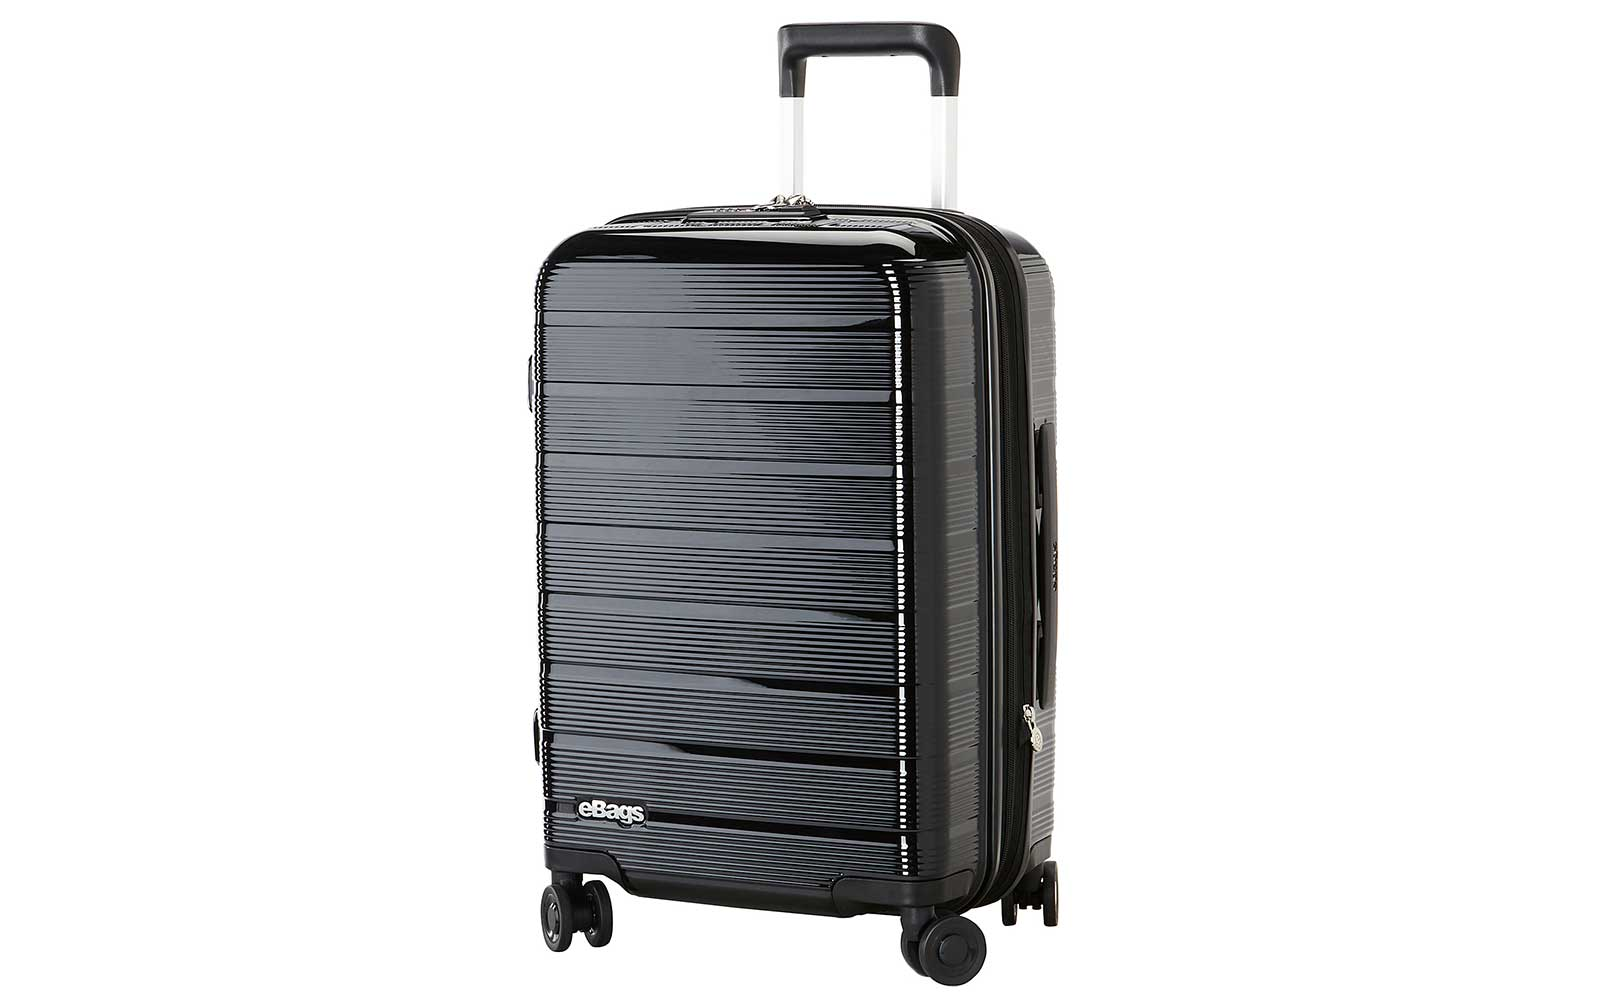 eBags Roller Suitcase